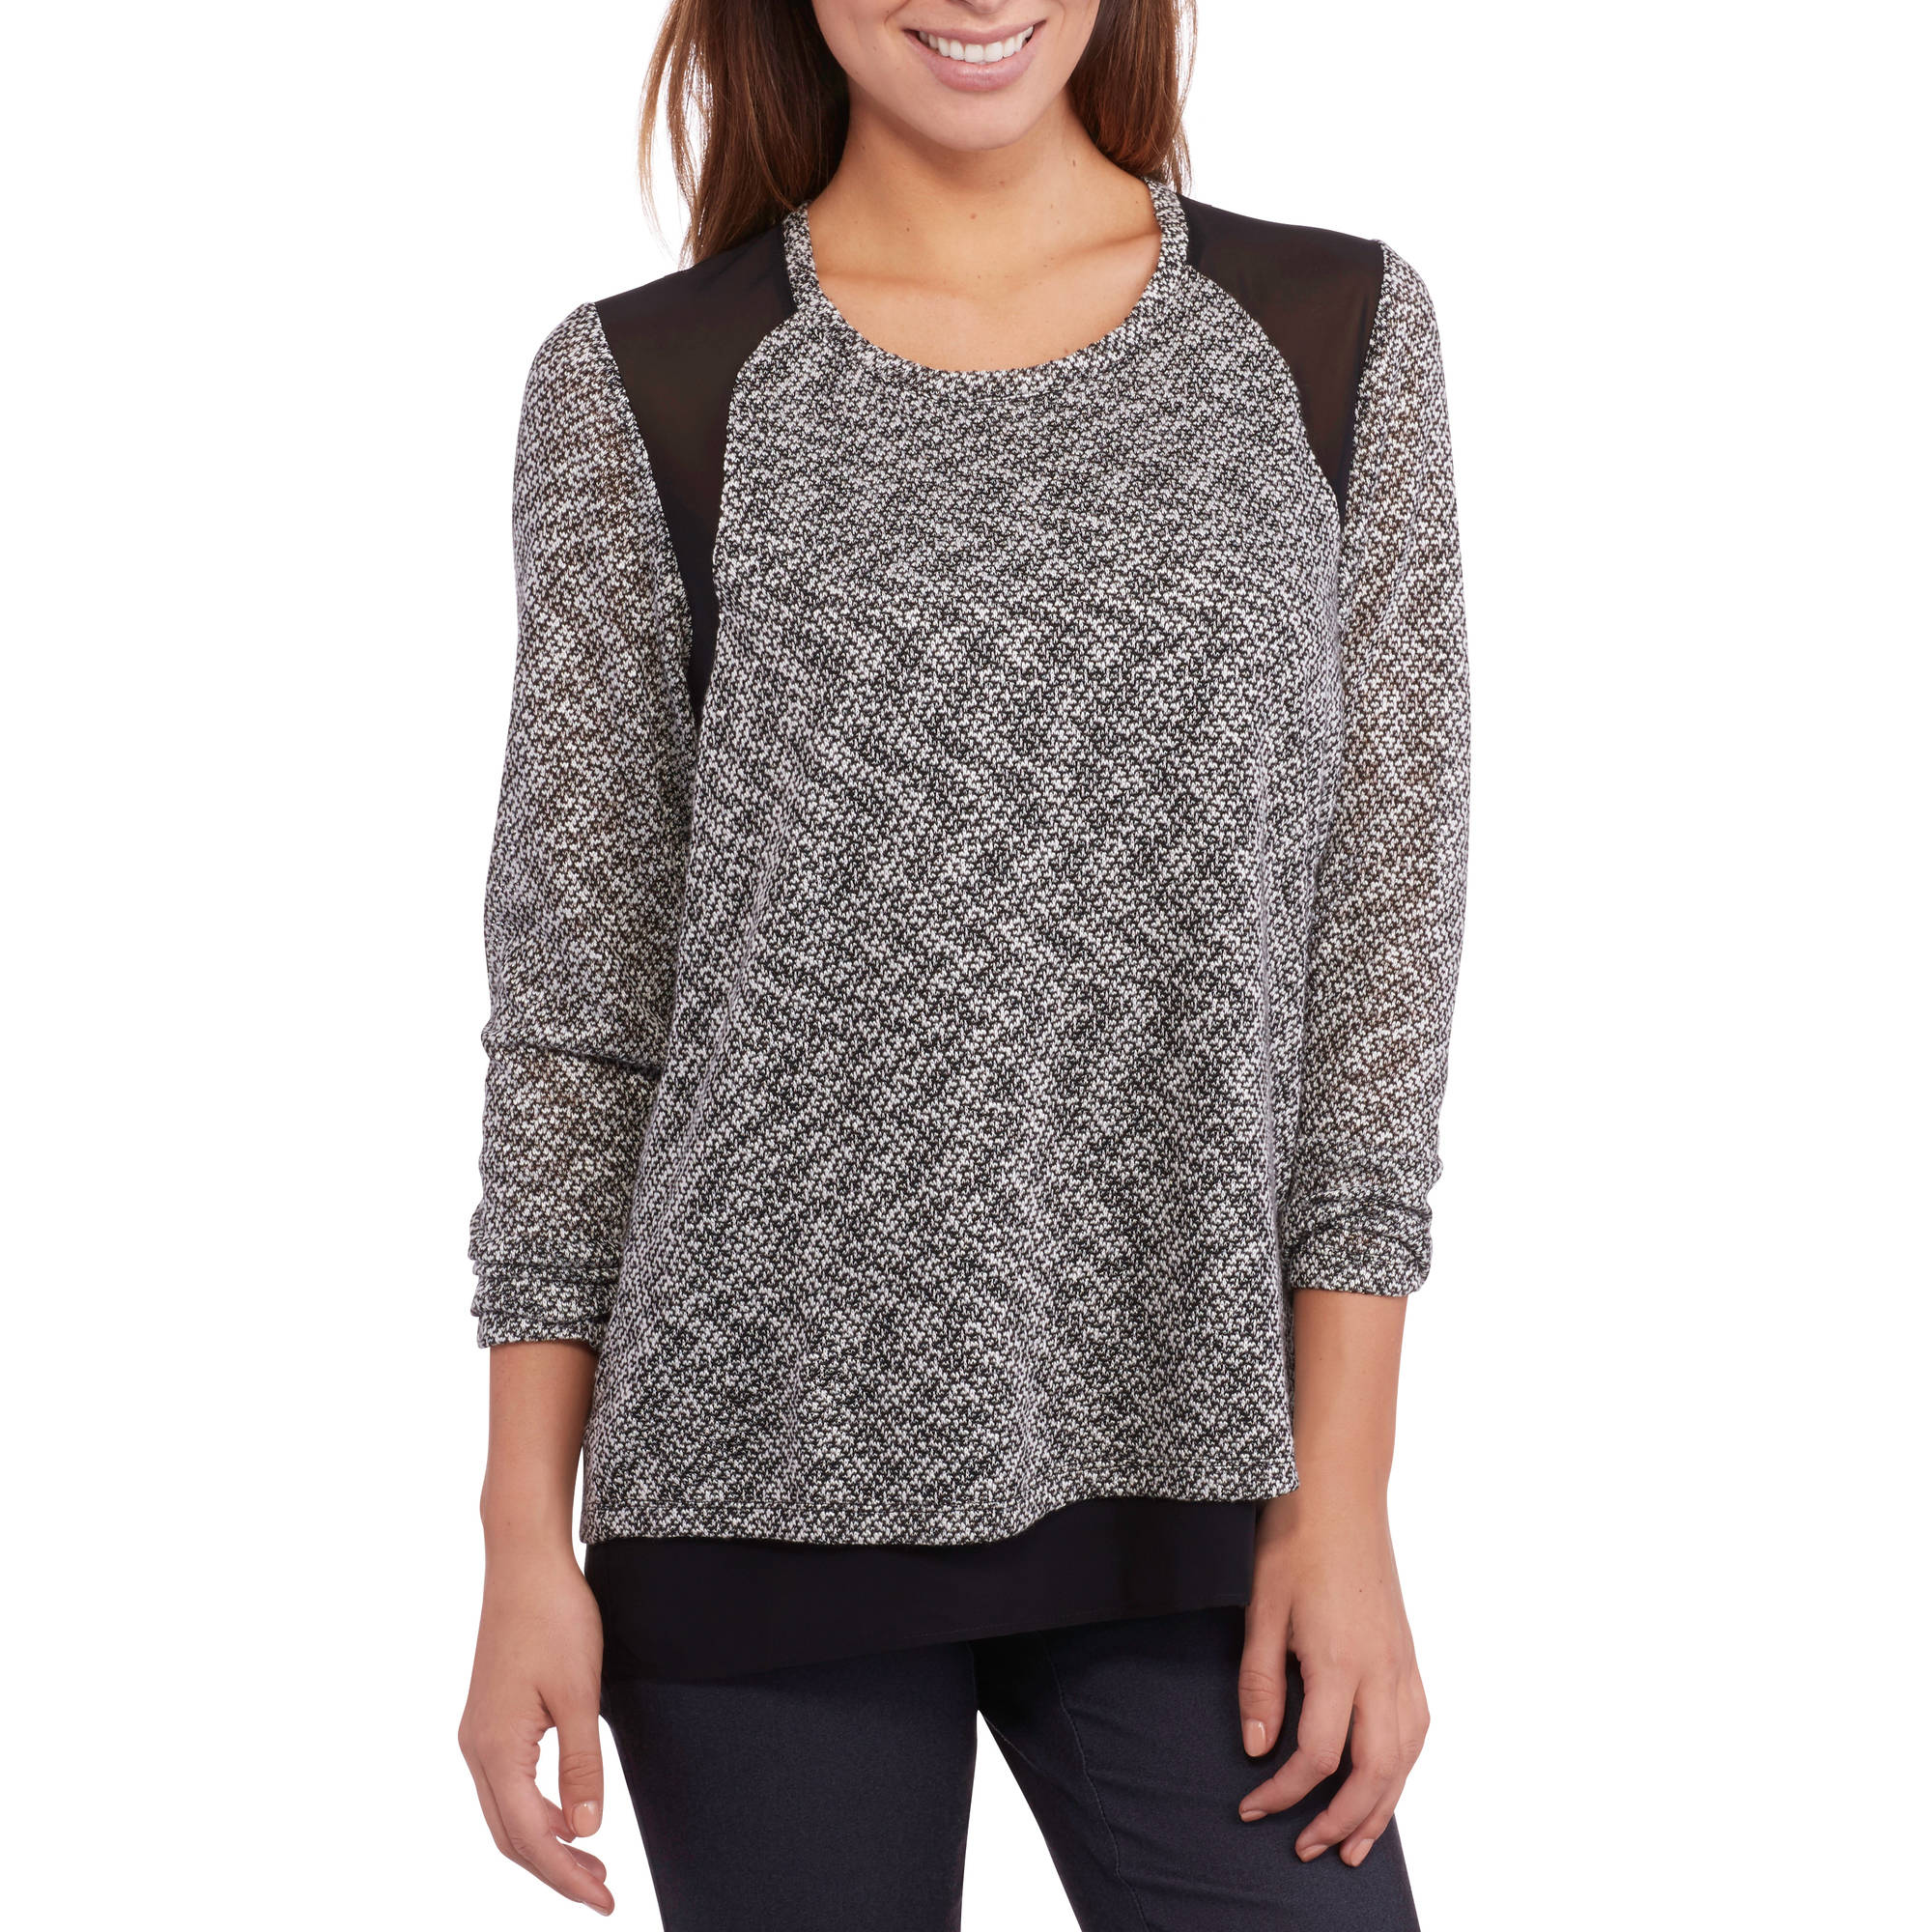 Tru Self Women's High-Low T-Shirt with Elbow Patch